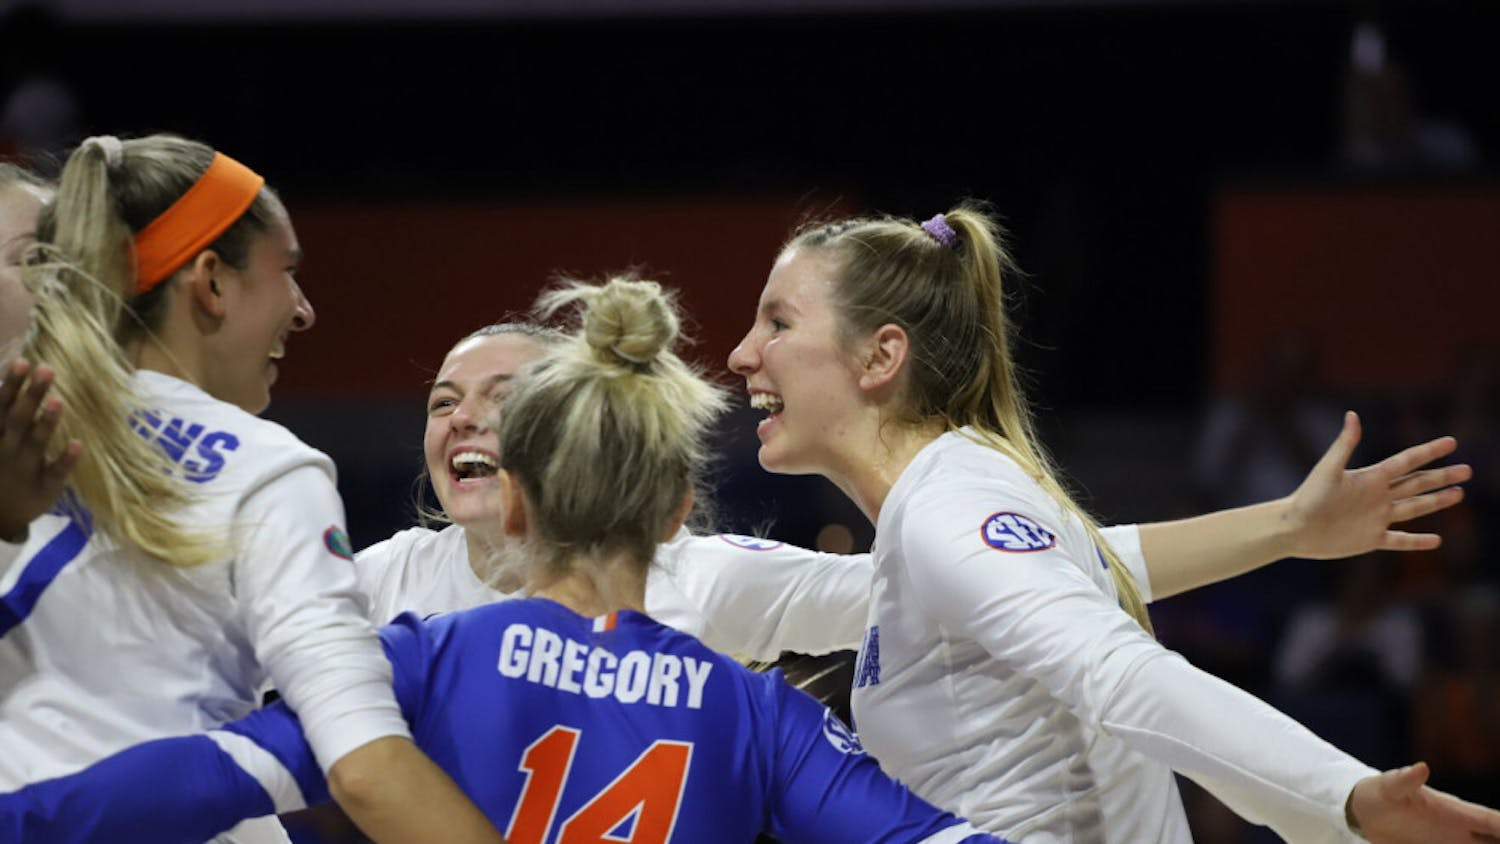 The Gators celebrate a successful play at home against Texas A&M in 2019.